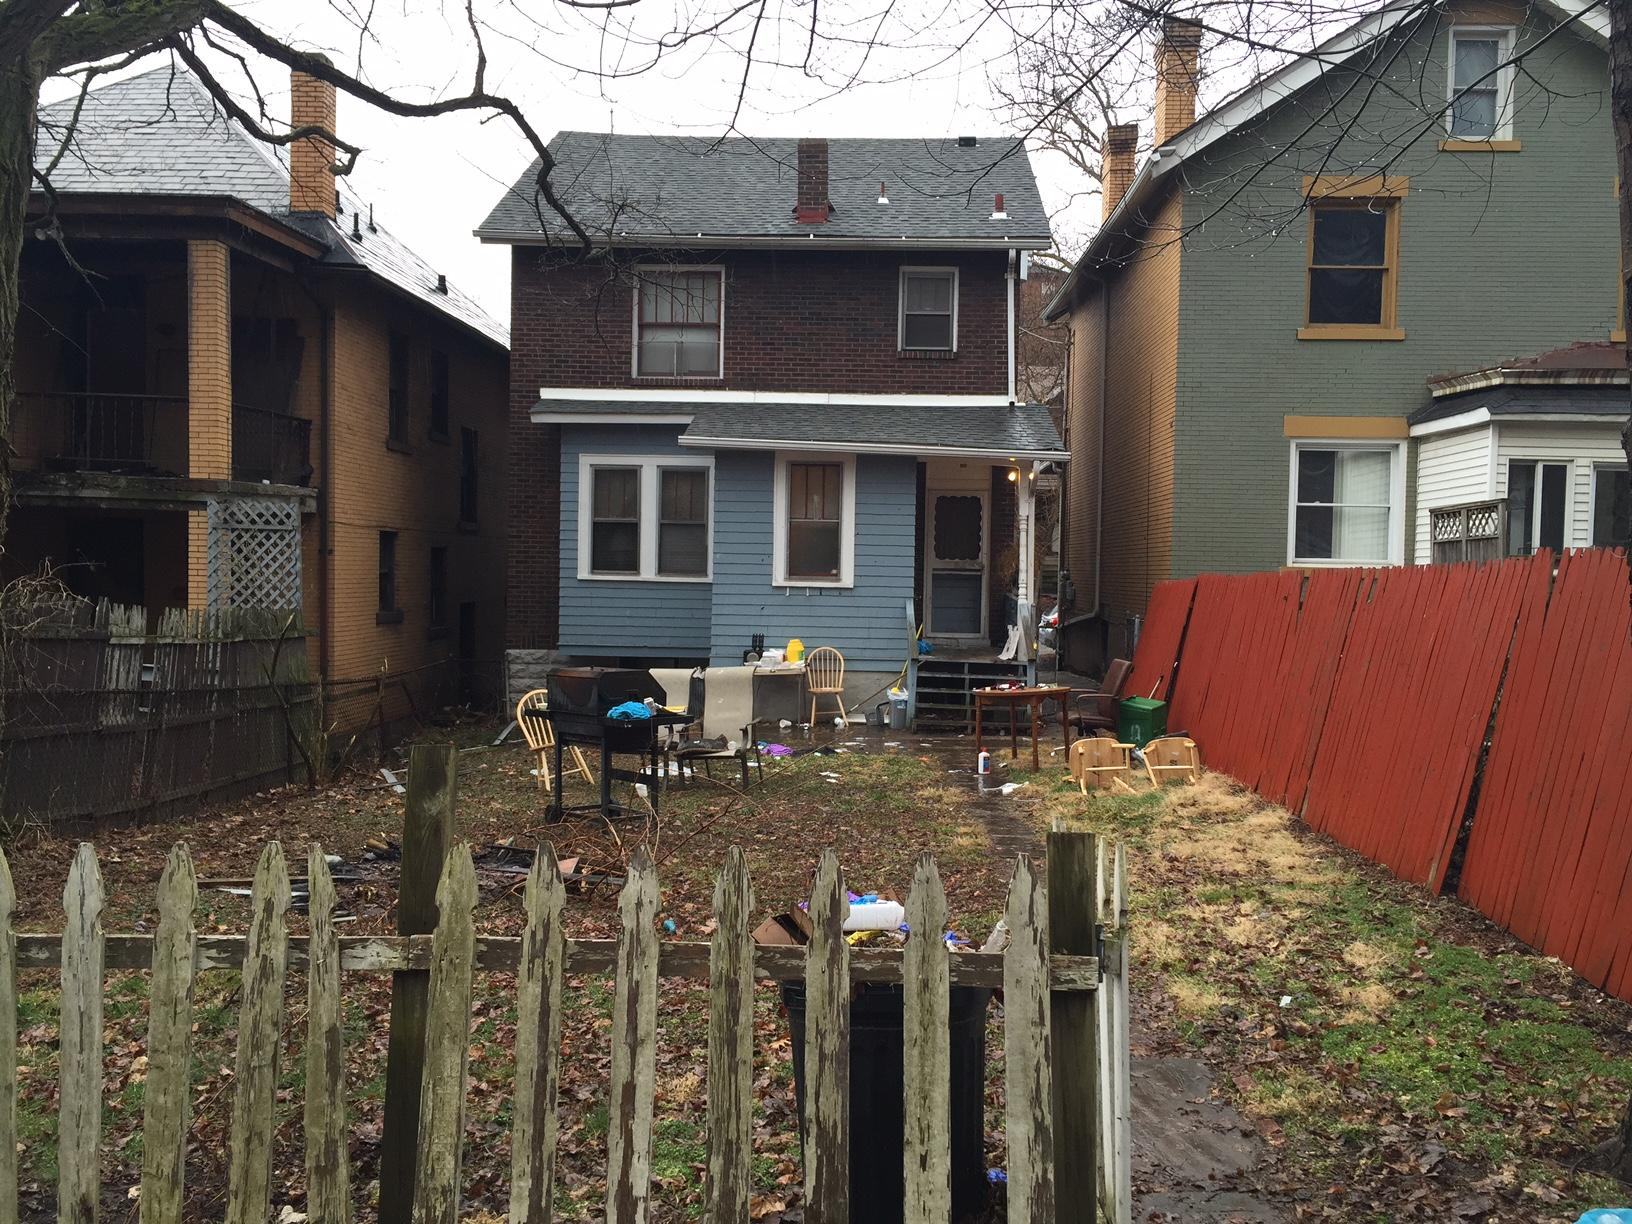 The Backyard Of Home At 1304 Franklin Ave In Wilkinsburg Where Gunman Opened Fire On A Party Late Wednesday Night